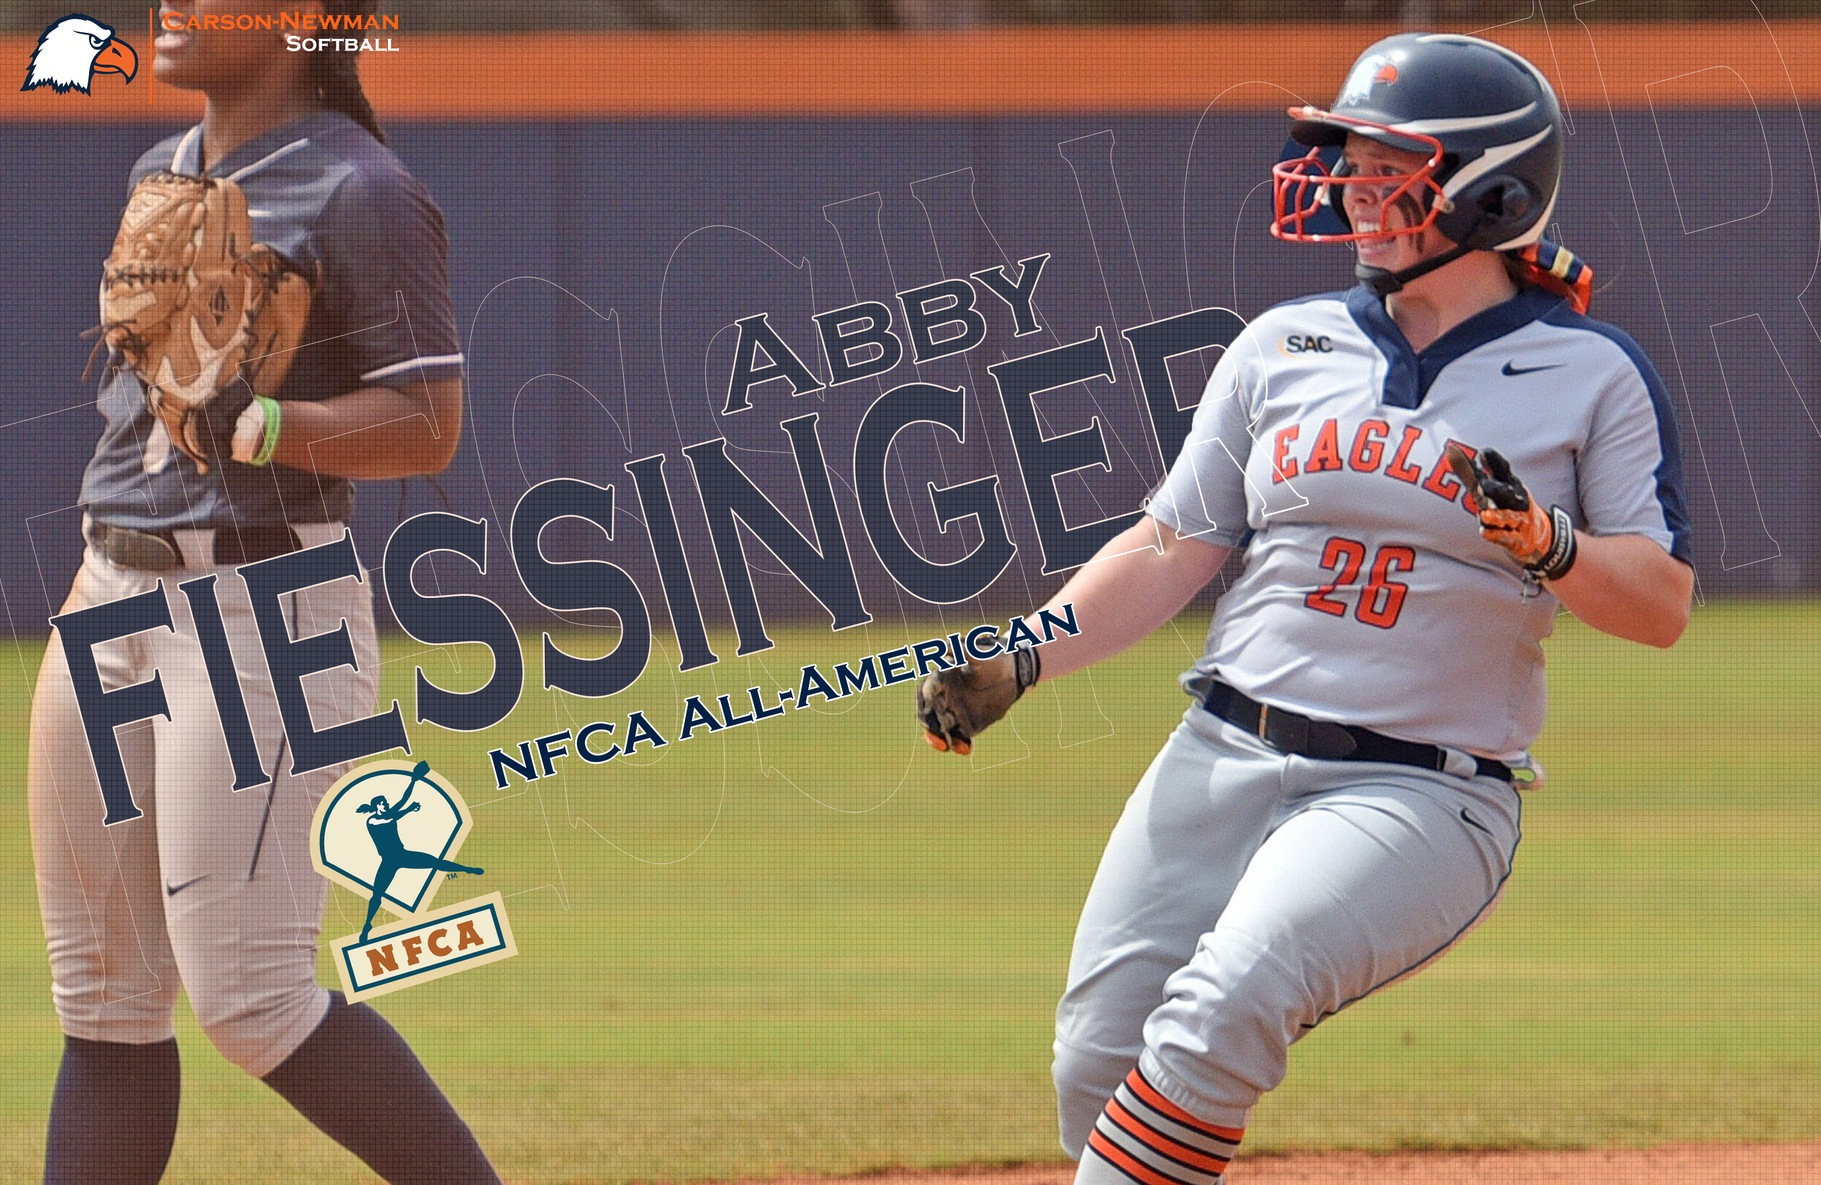 Fiessinger ropes in All-America honors from NFCA, D2CCA